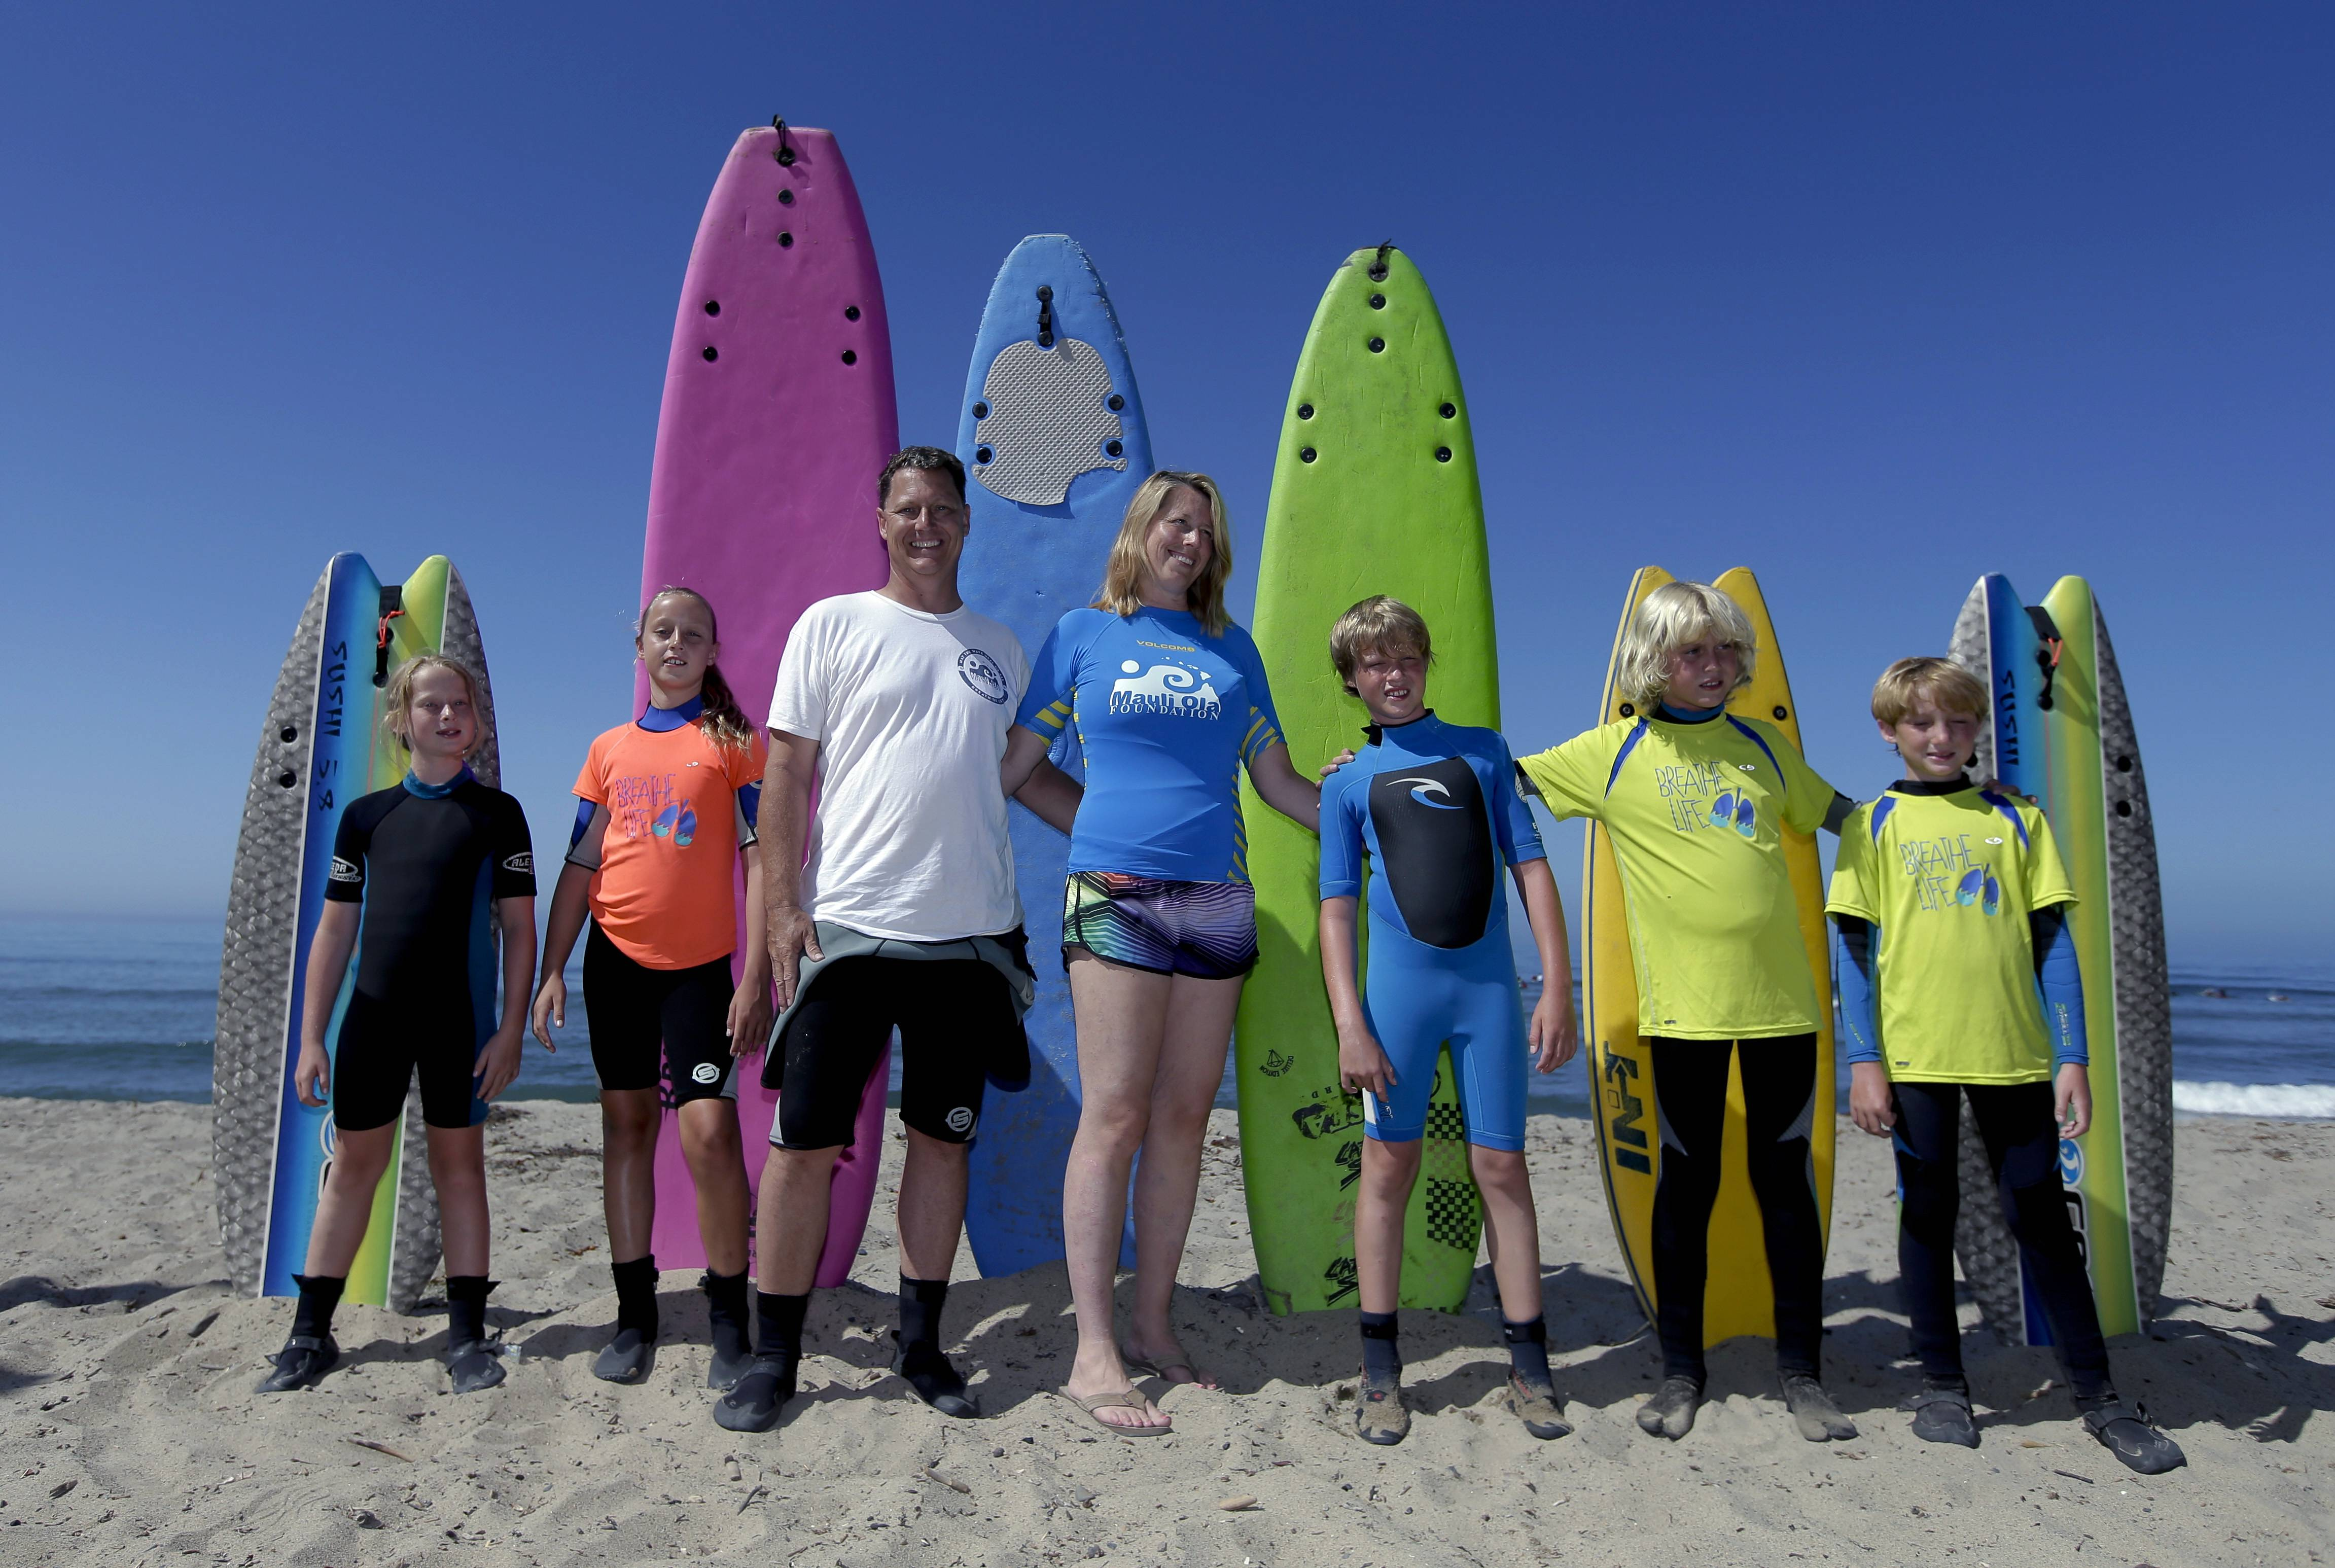 In this July 24, 2014 photo, the Montelone family, from left, Grace, 8, Brooke, 10, Rob, Paulette, Brian, 10, Michael, 12, and Gavin, 8, pose for a family picture on the beach in San Clemente, Calif. Three of the Montelone's five children, who have cystic fibrosis, are part of a growing number of people to take advantage of the health benefits that come with surfing.